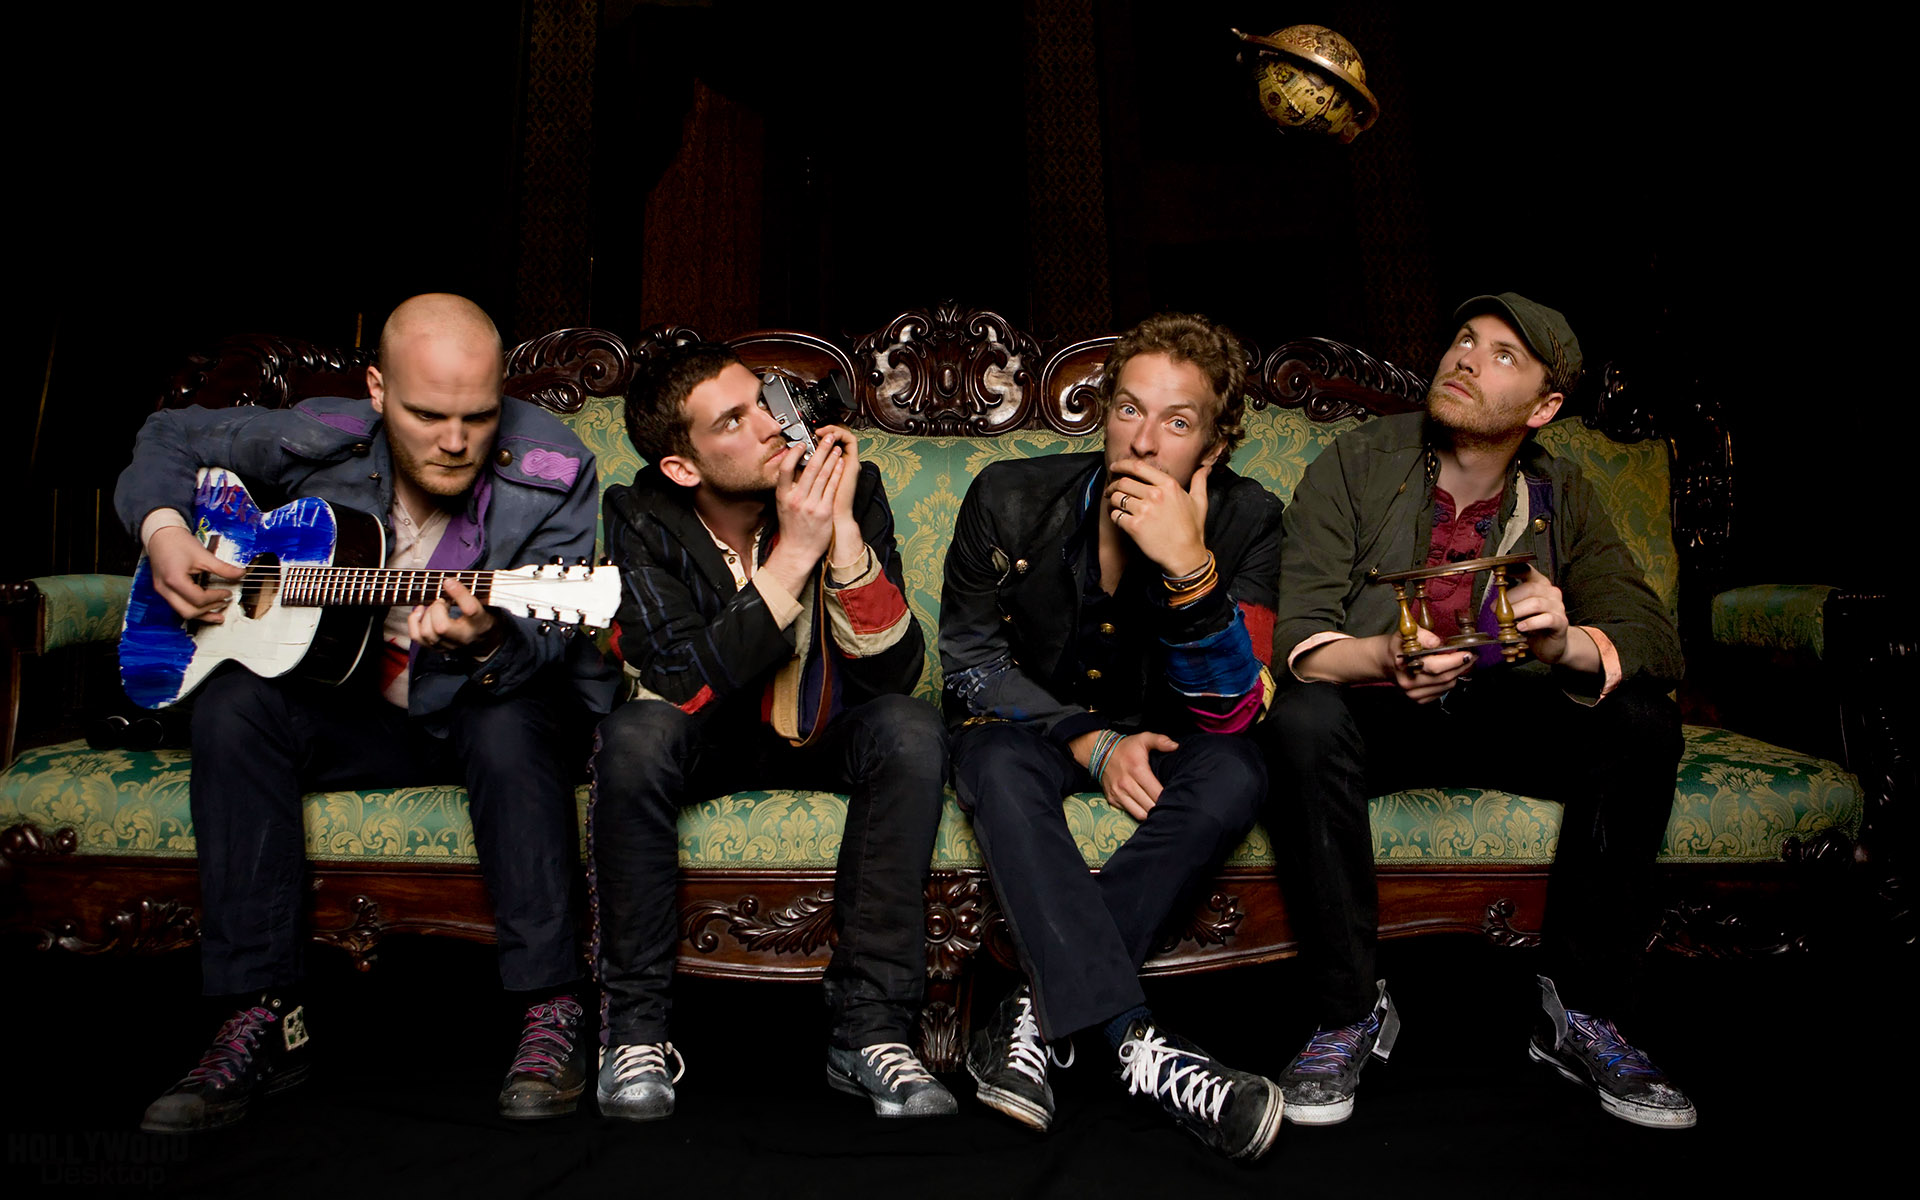 Music - Coldplay  Cool Photography Artistic Music Wallpaper